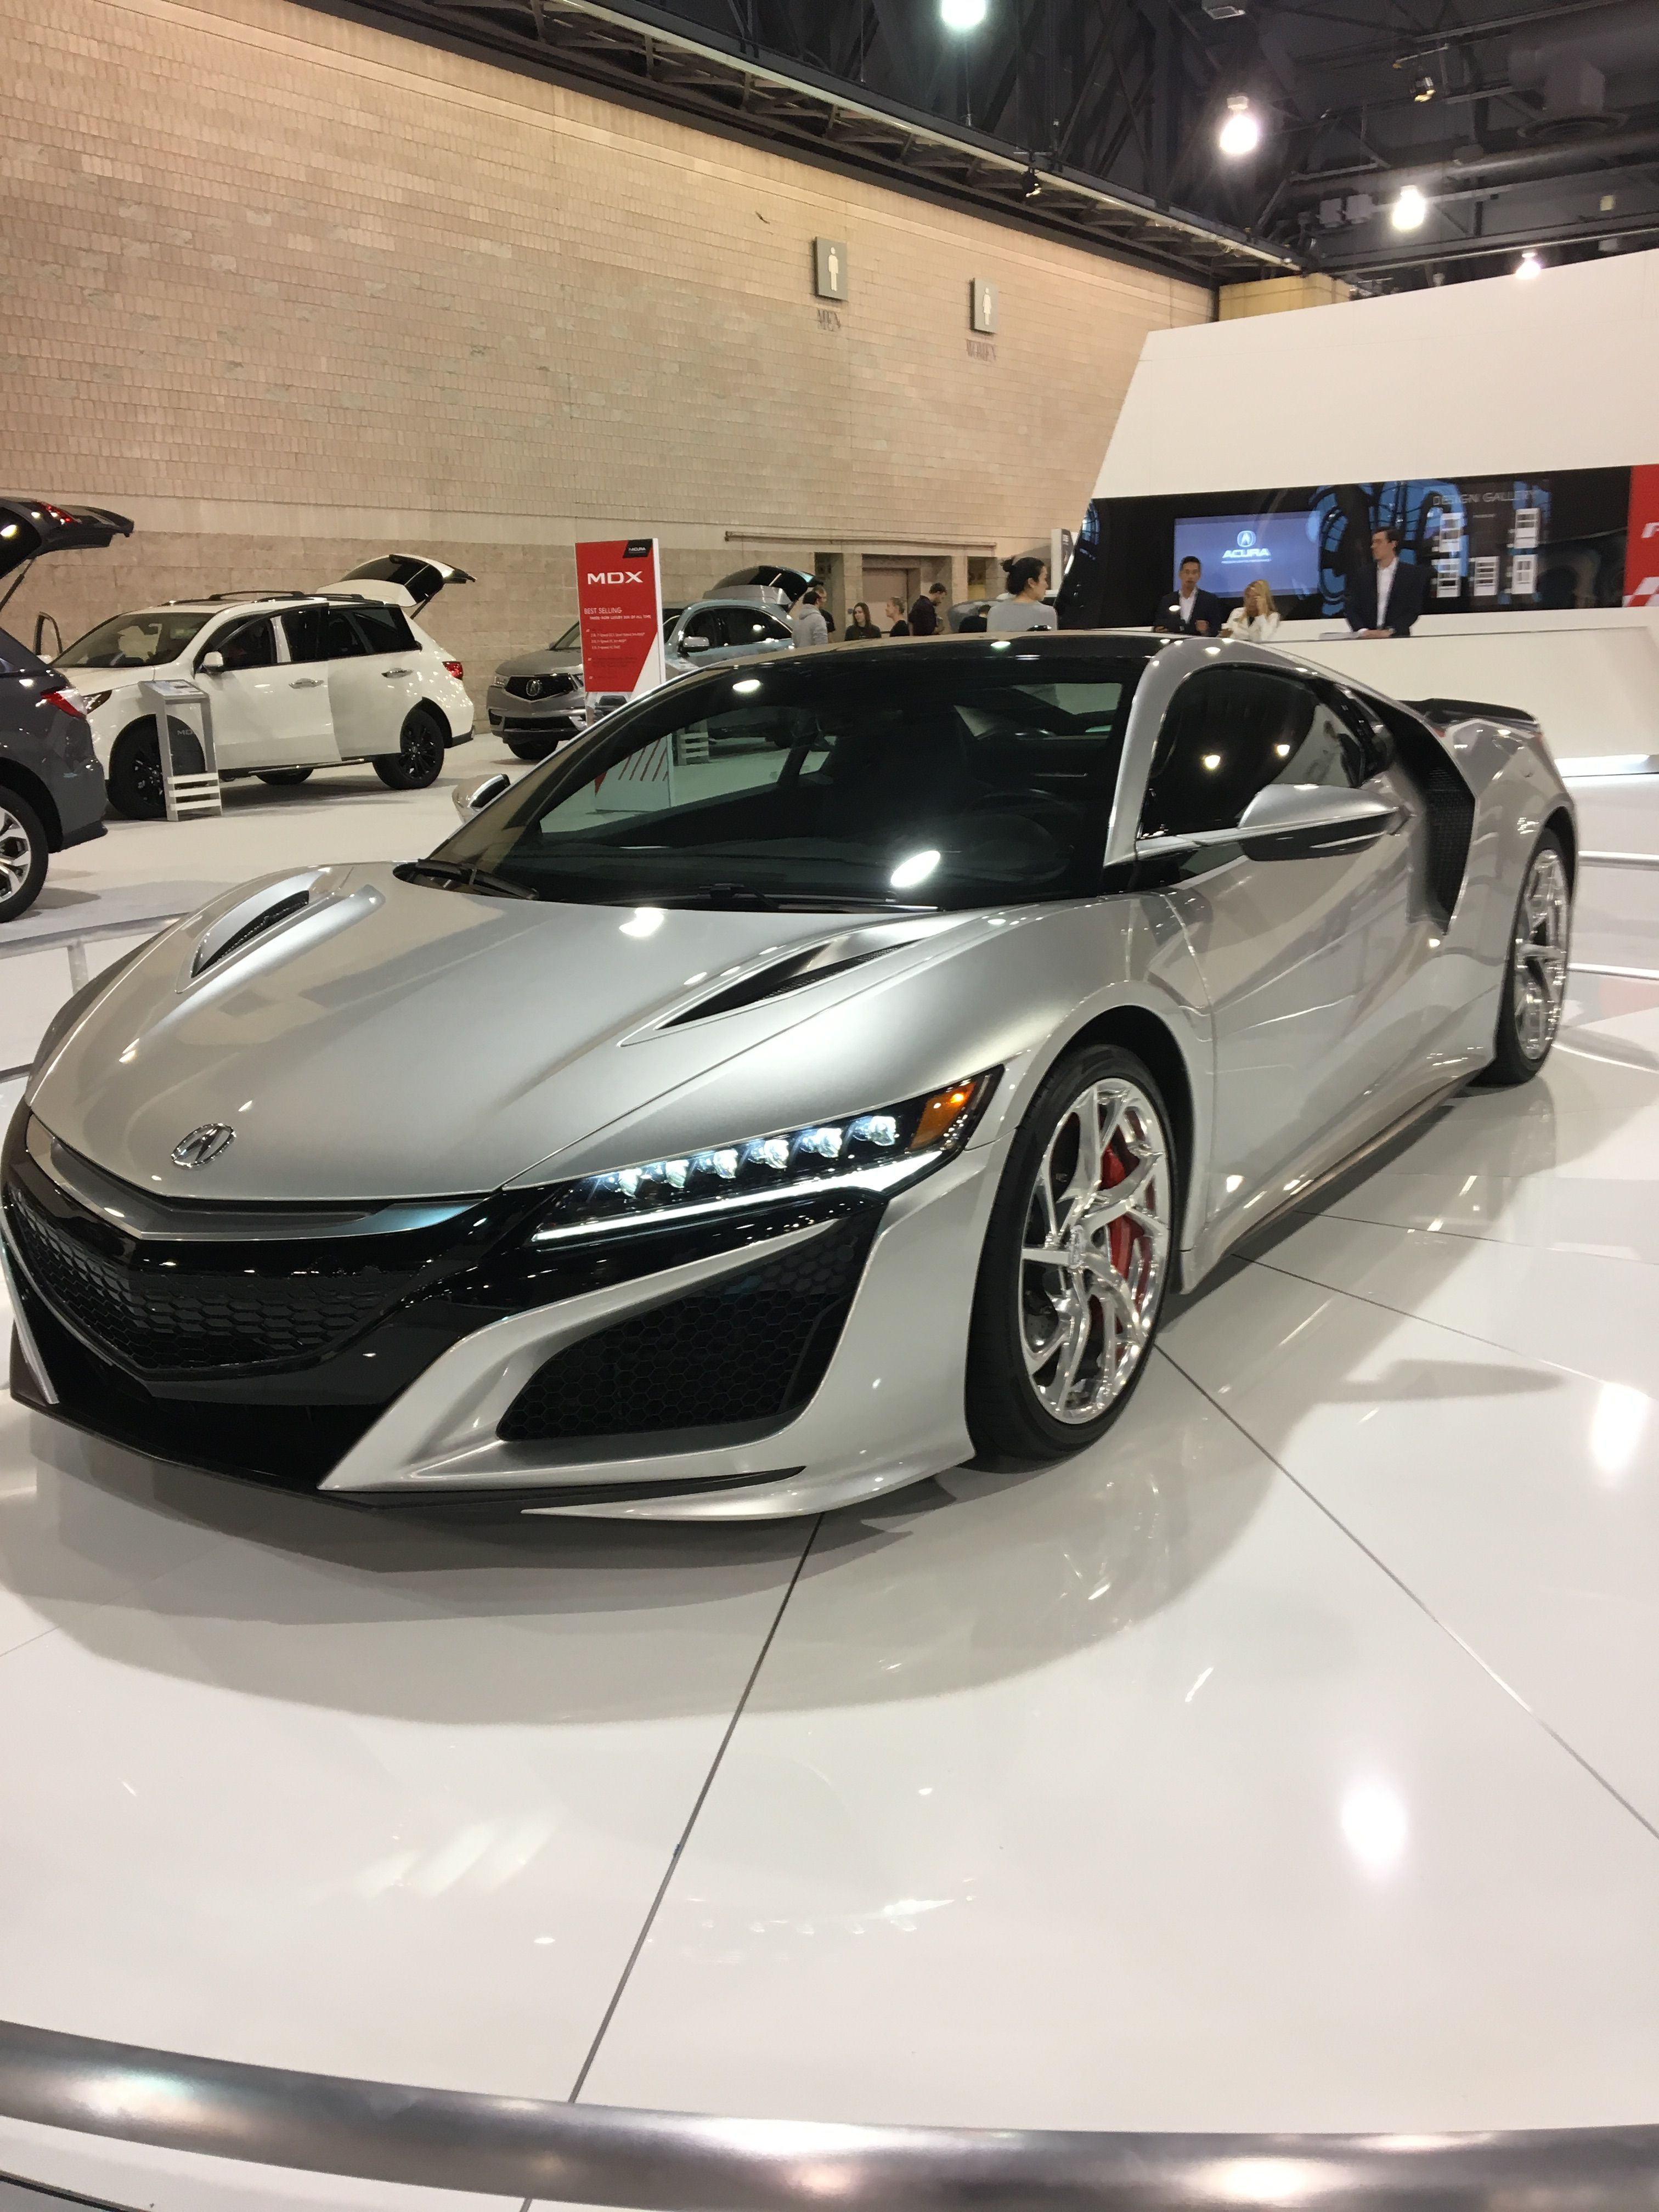 2018 Acura Nsx Phillyautoshow Nsx Acura Nsx Super Luxury Cars